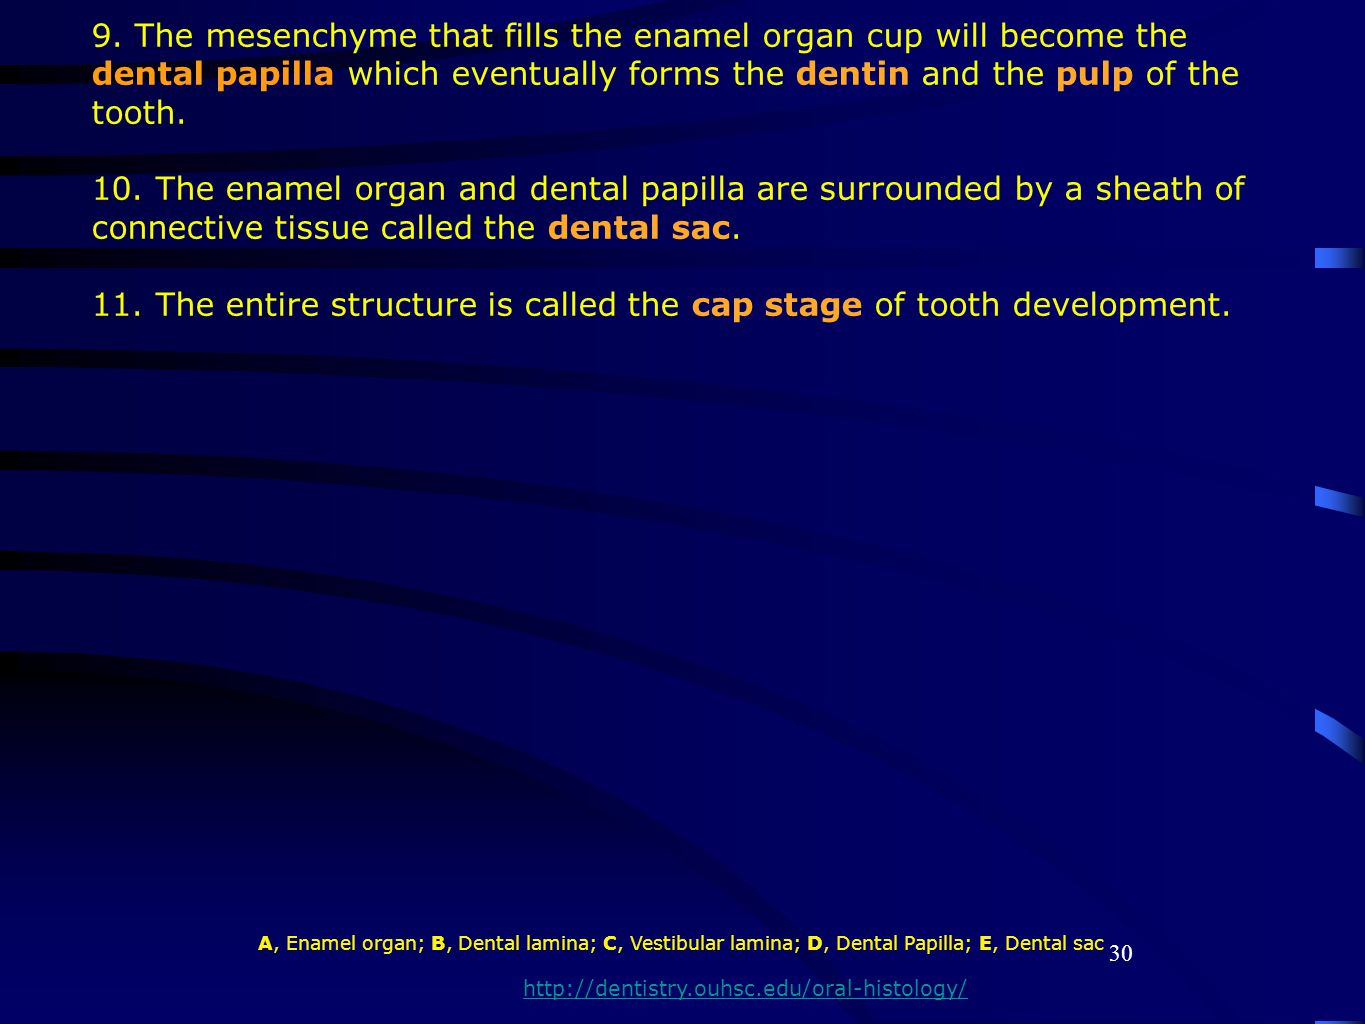 11. The entire structure is called the cap stage of tooth development.